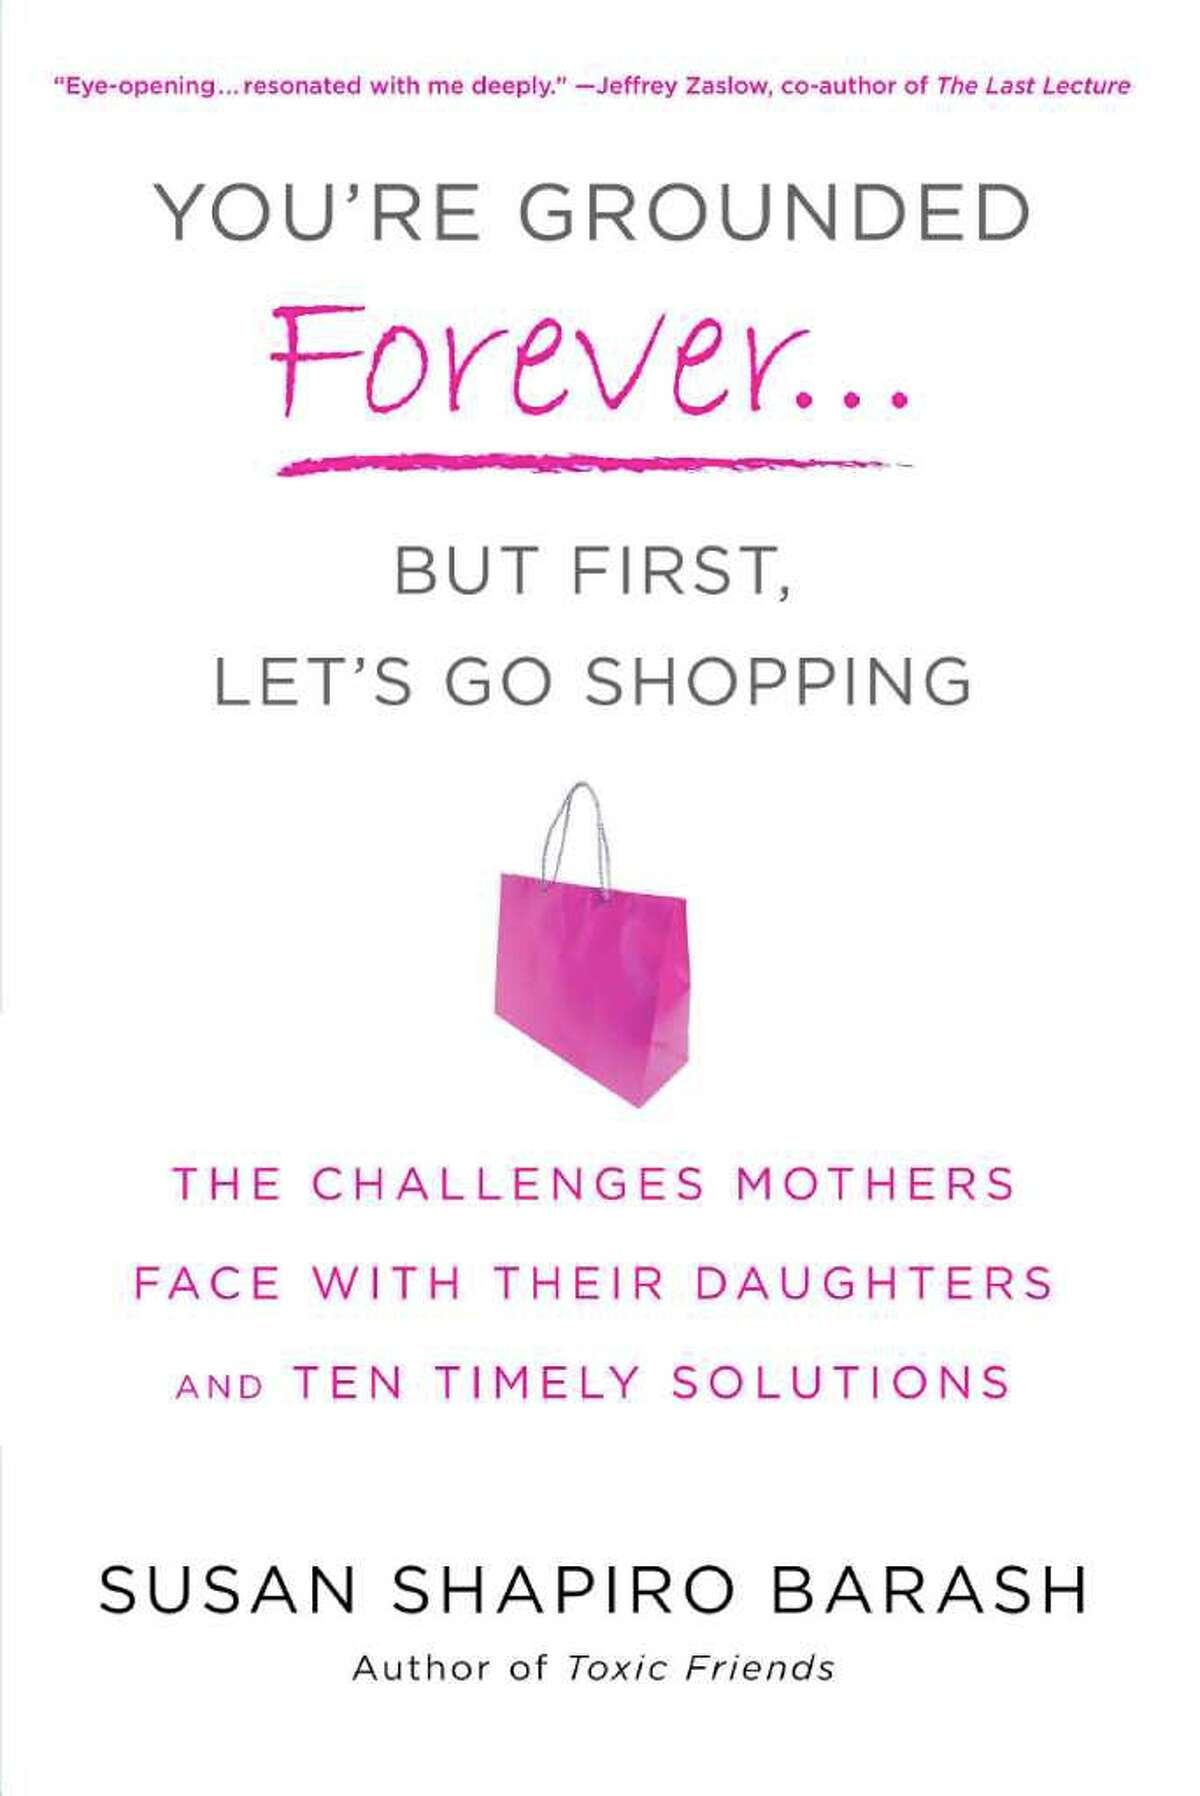 """""""You're Grounded Forever...But First, Let's Go Shopping"""" is a new book by renowned gender/relationships expert and bestselling author Susan Shapiro Barash."""